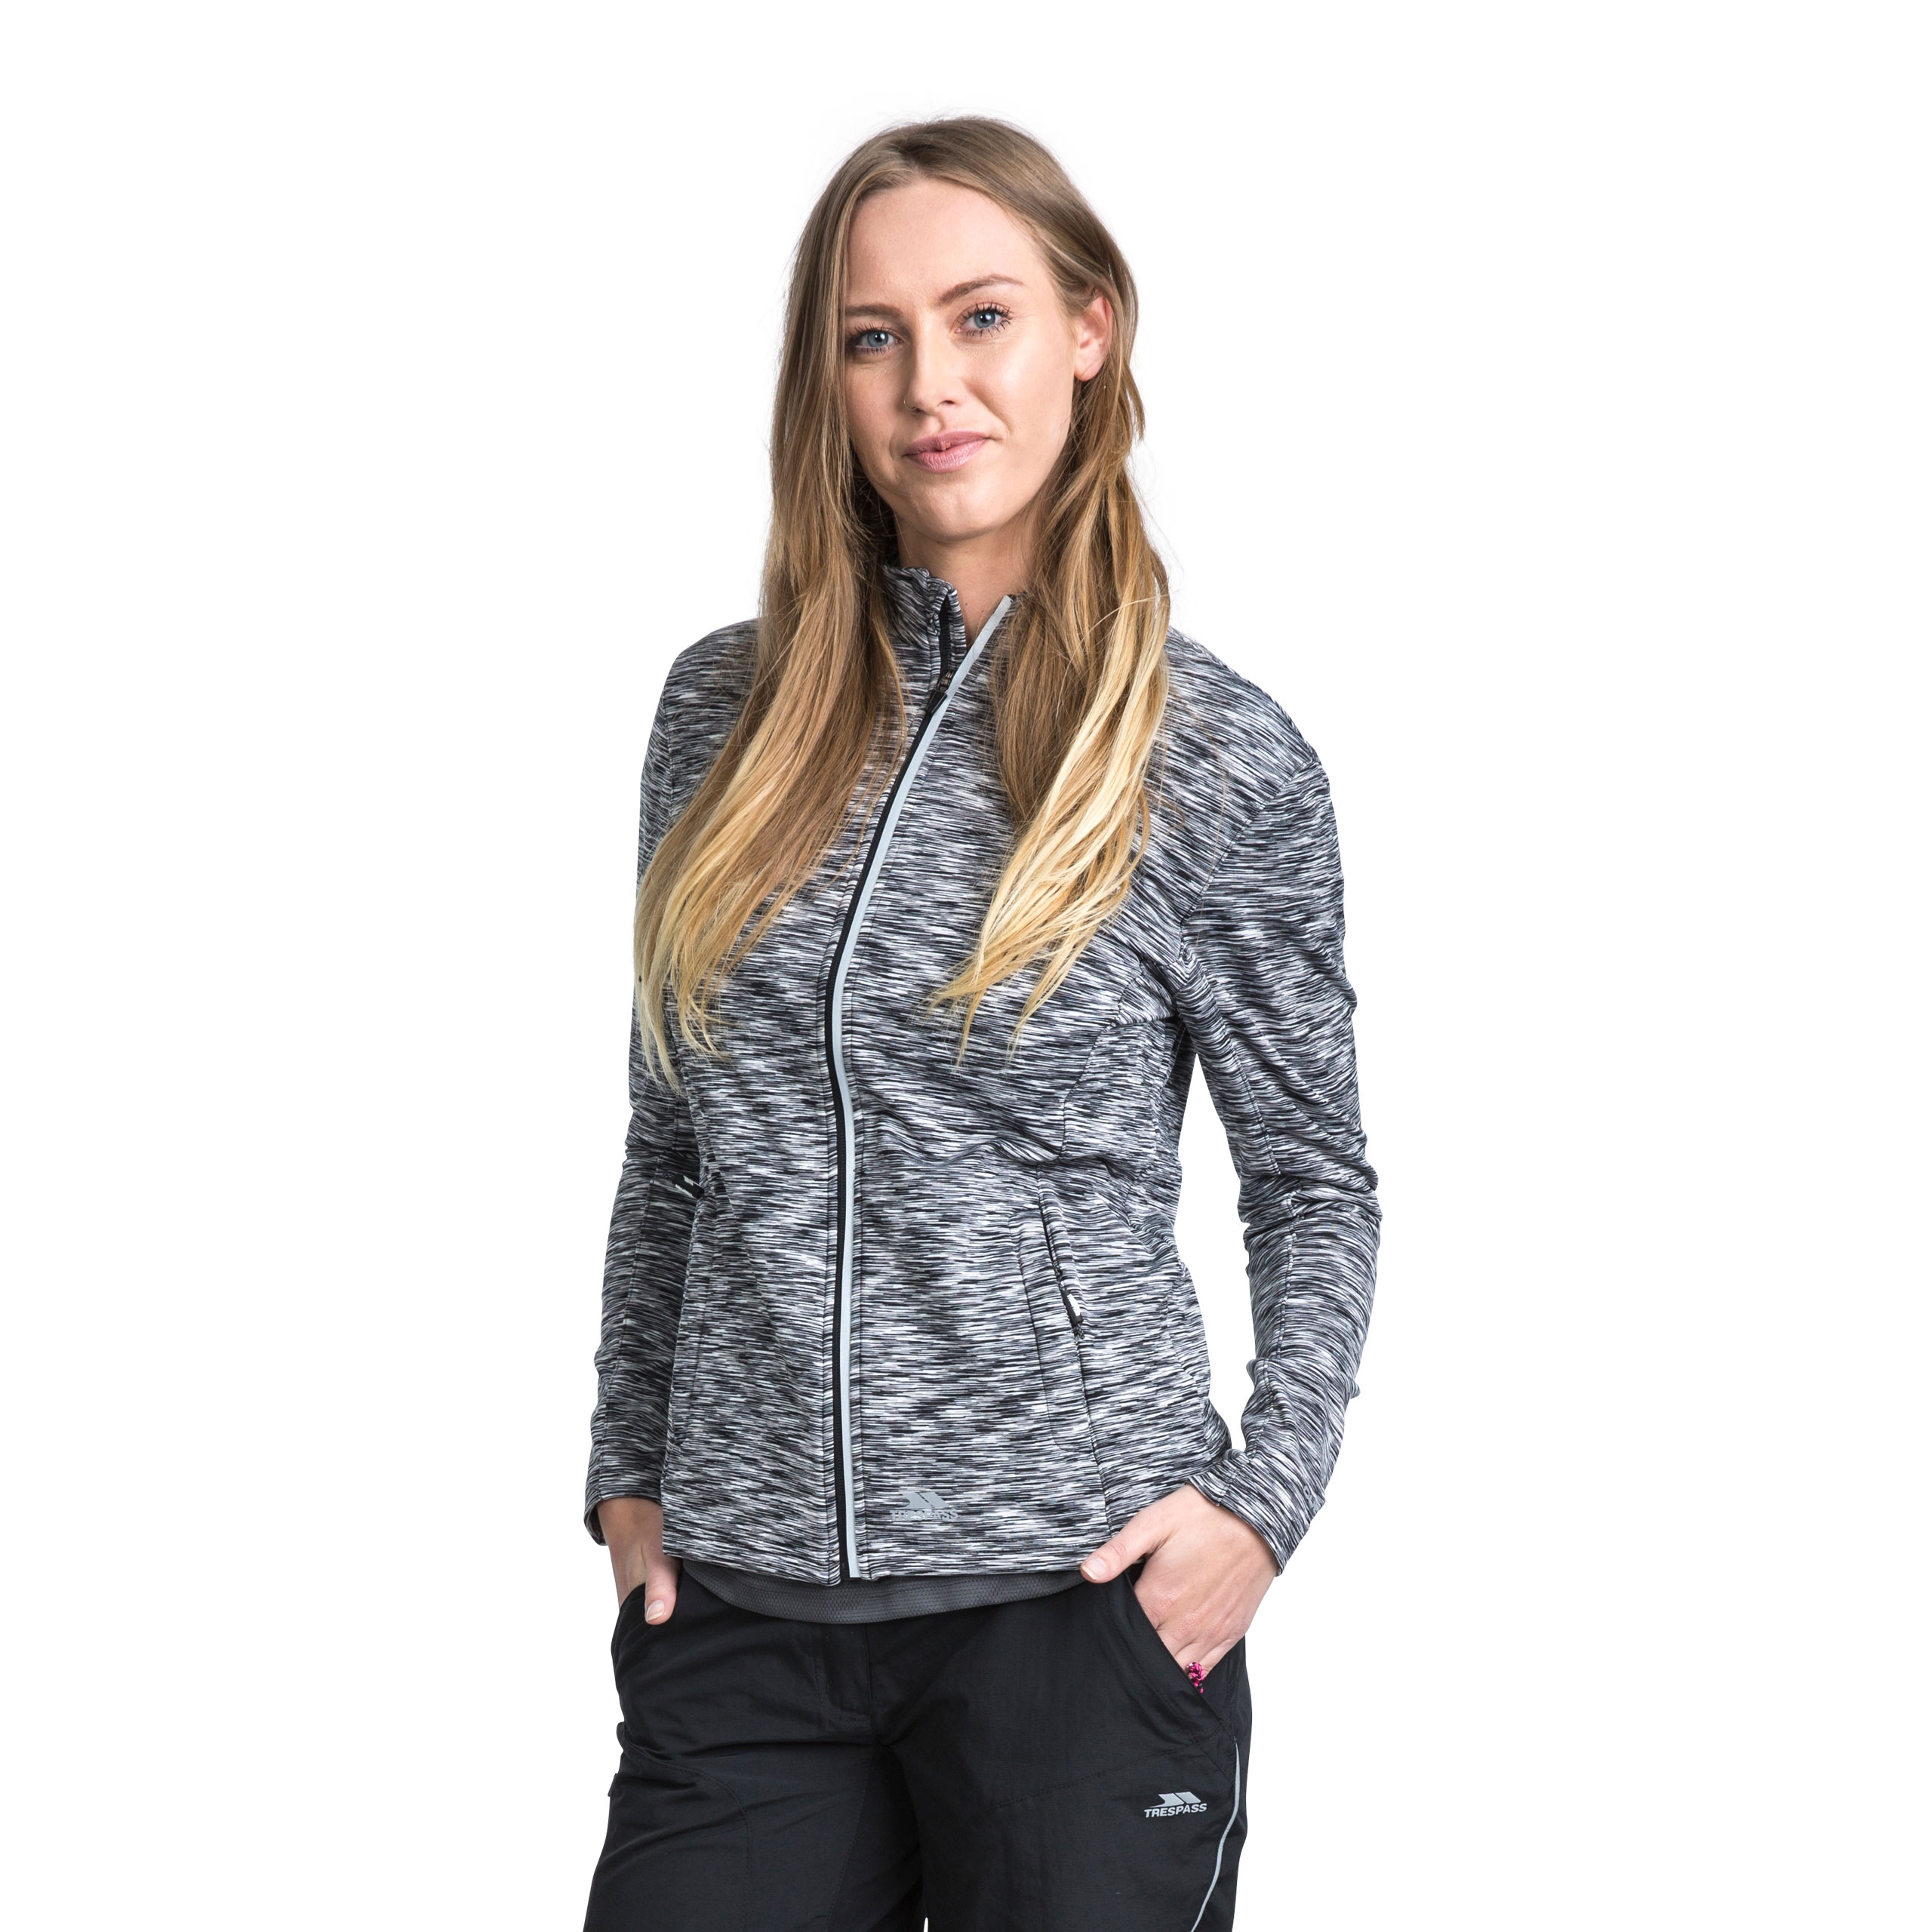 Indira Womens Long Sleeve Active Jacket